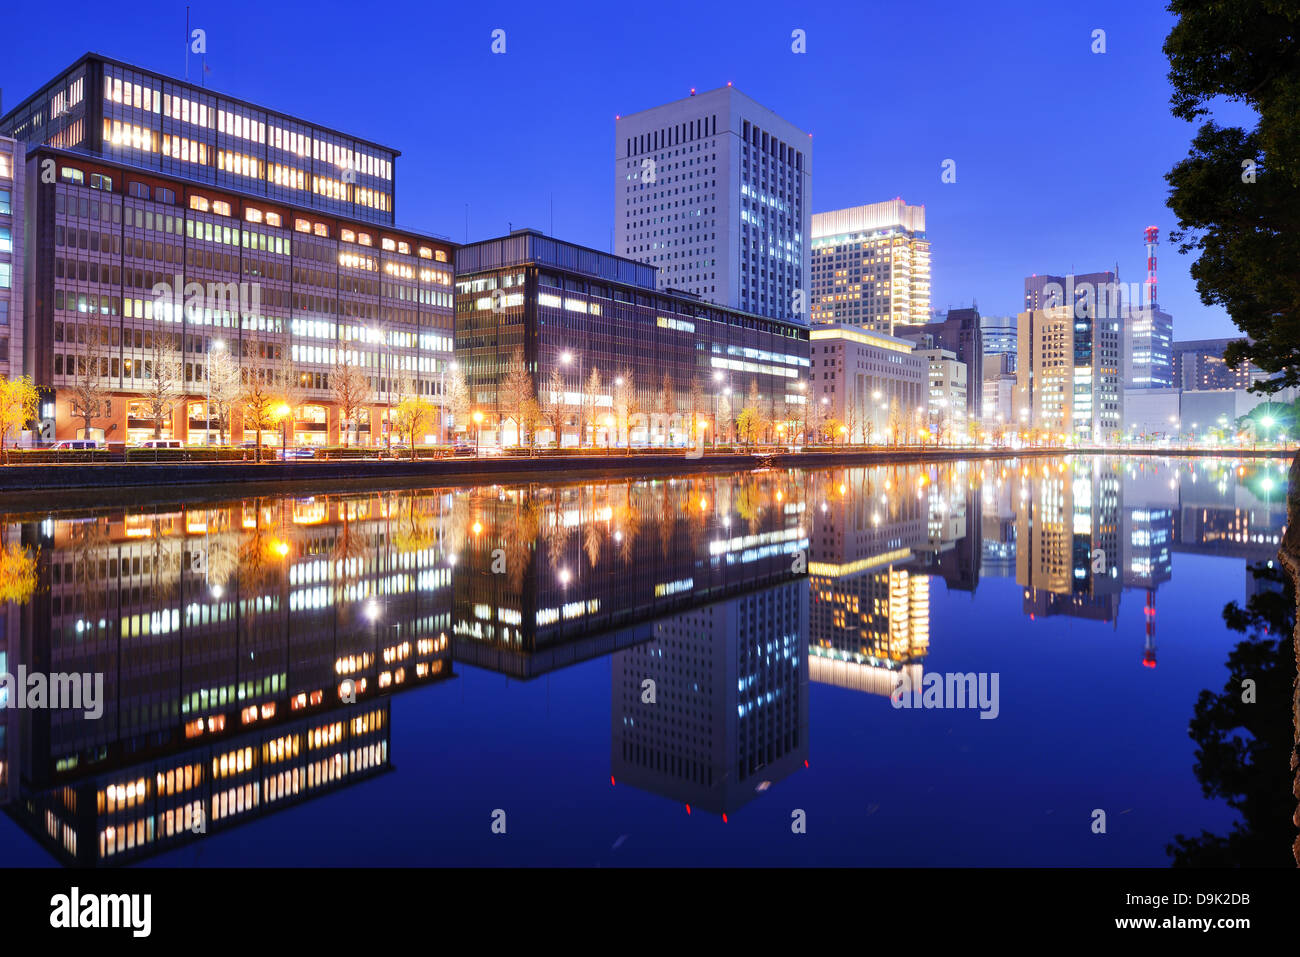 Marunouchi Business District in Tokyo, Japan. - Stock Image